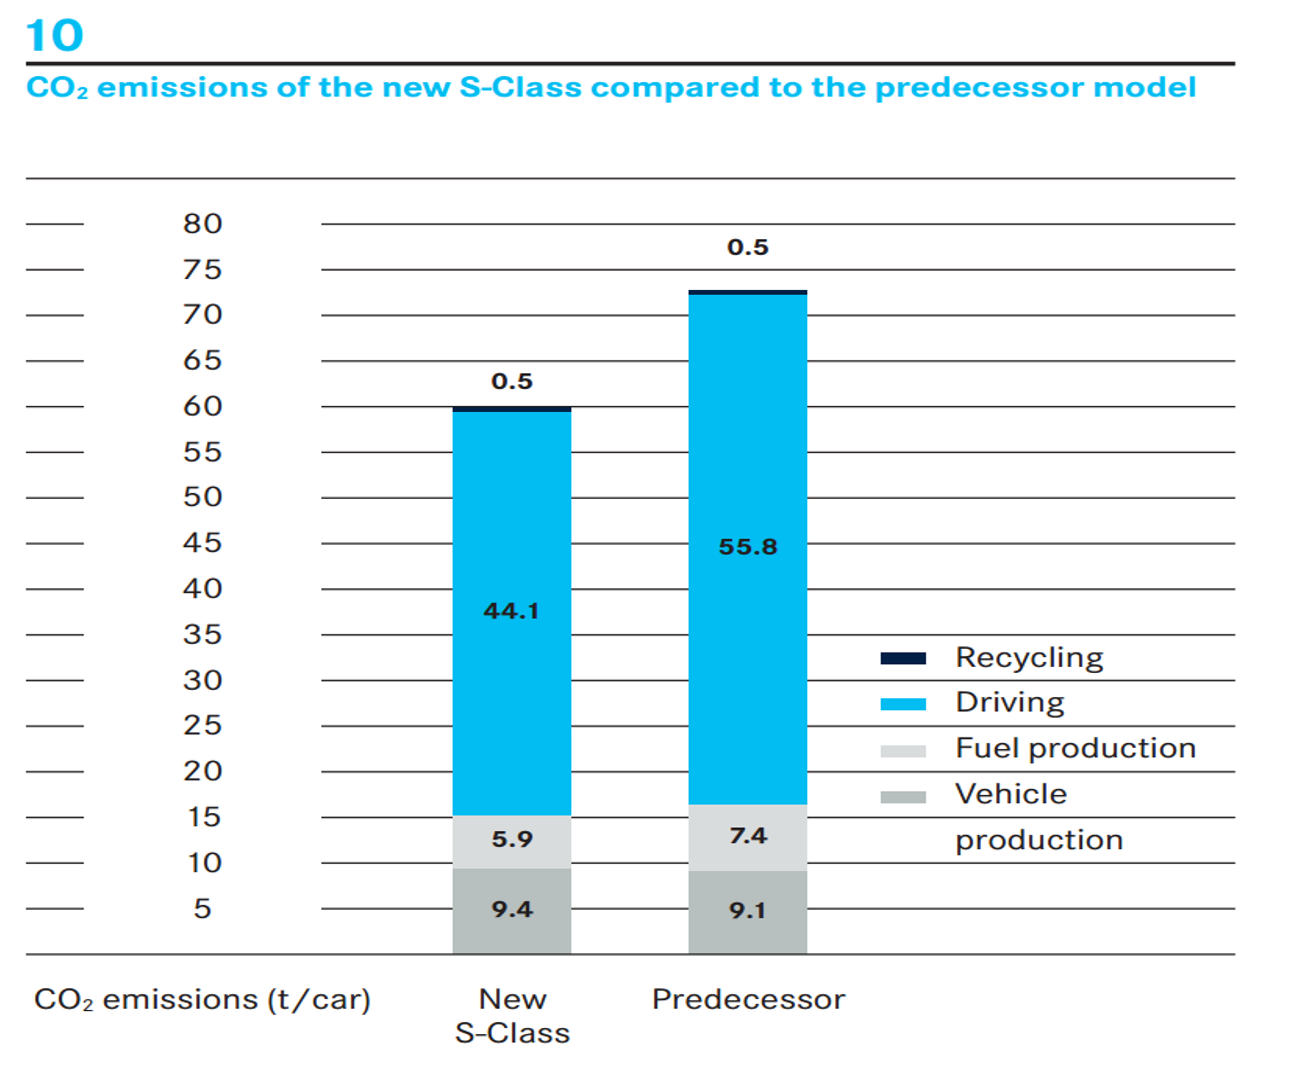 CO2 Emissions of the New S-Class Compared to the Predecessor Model. See text version below for more details.